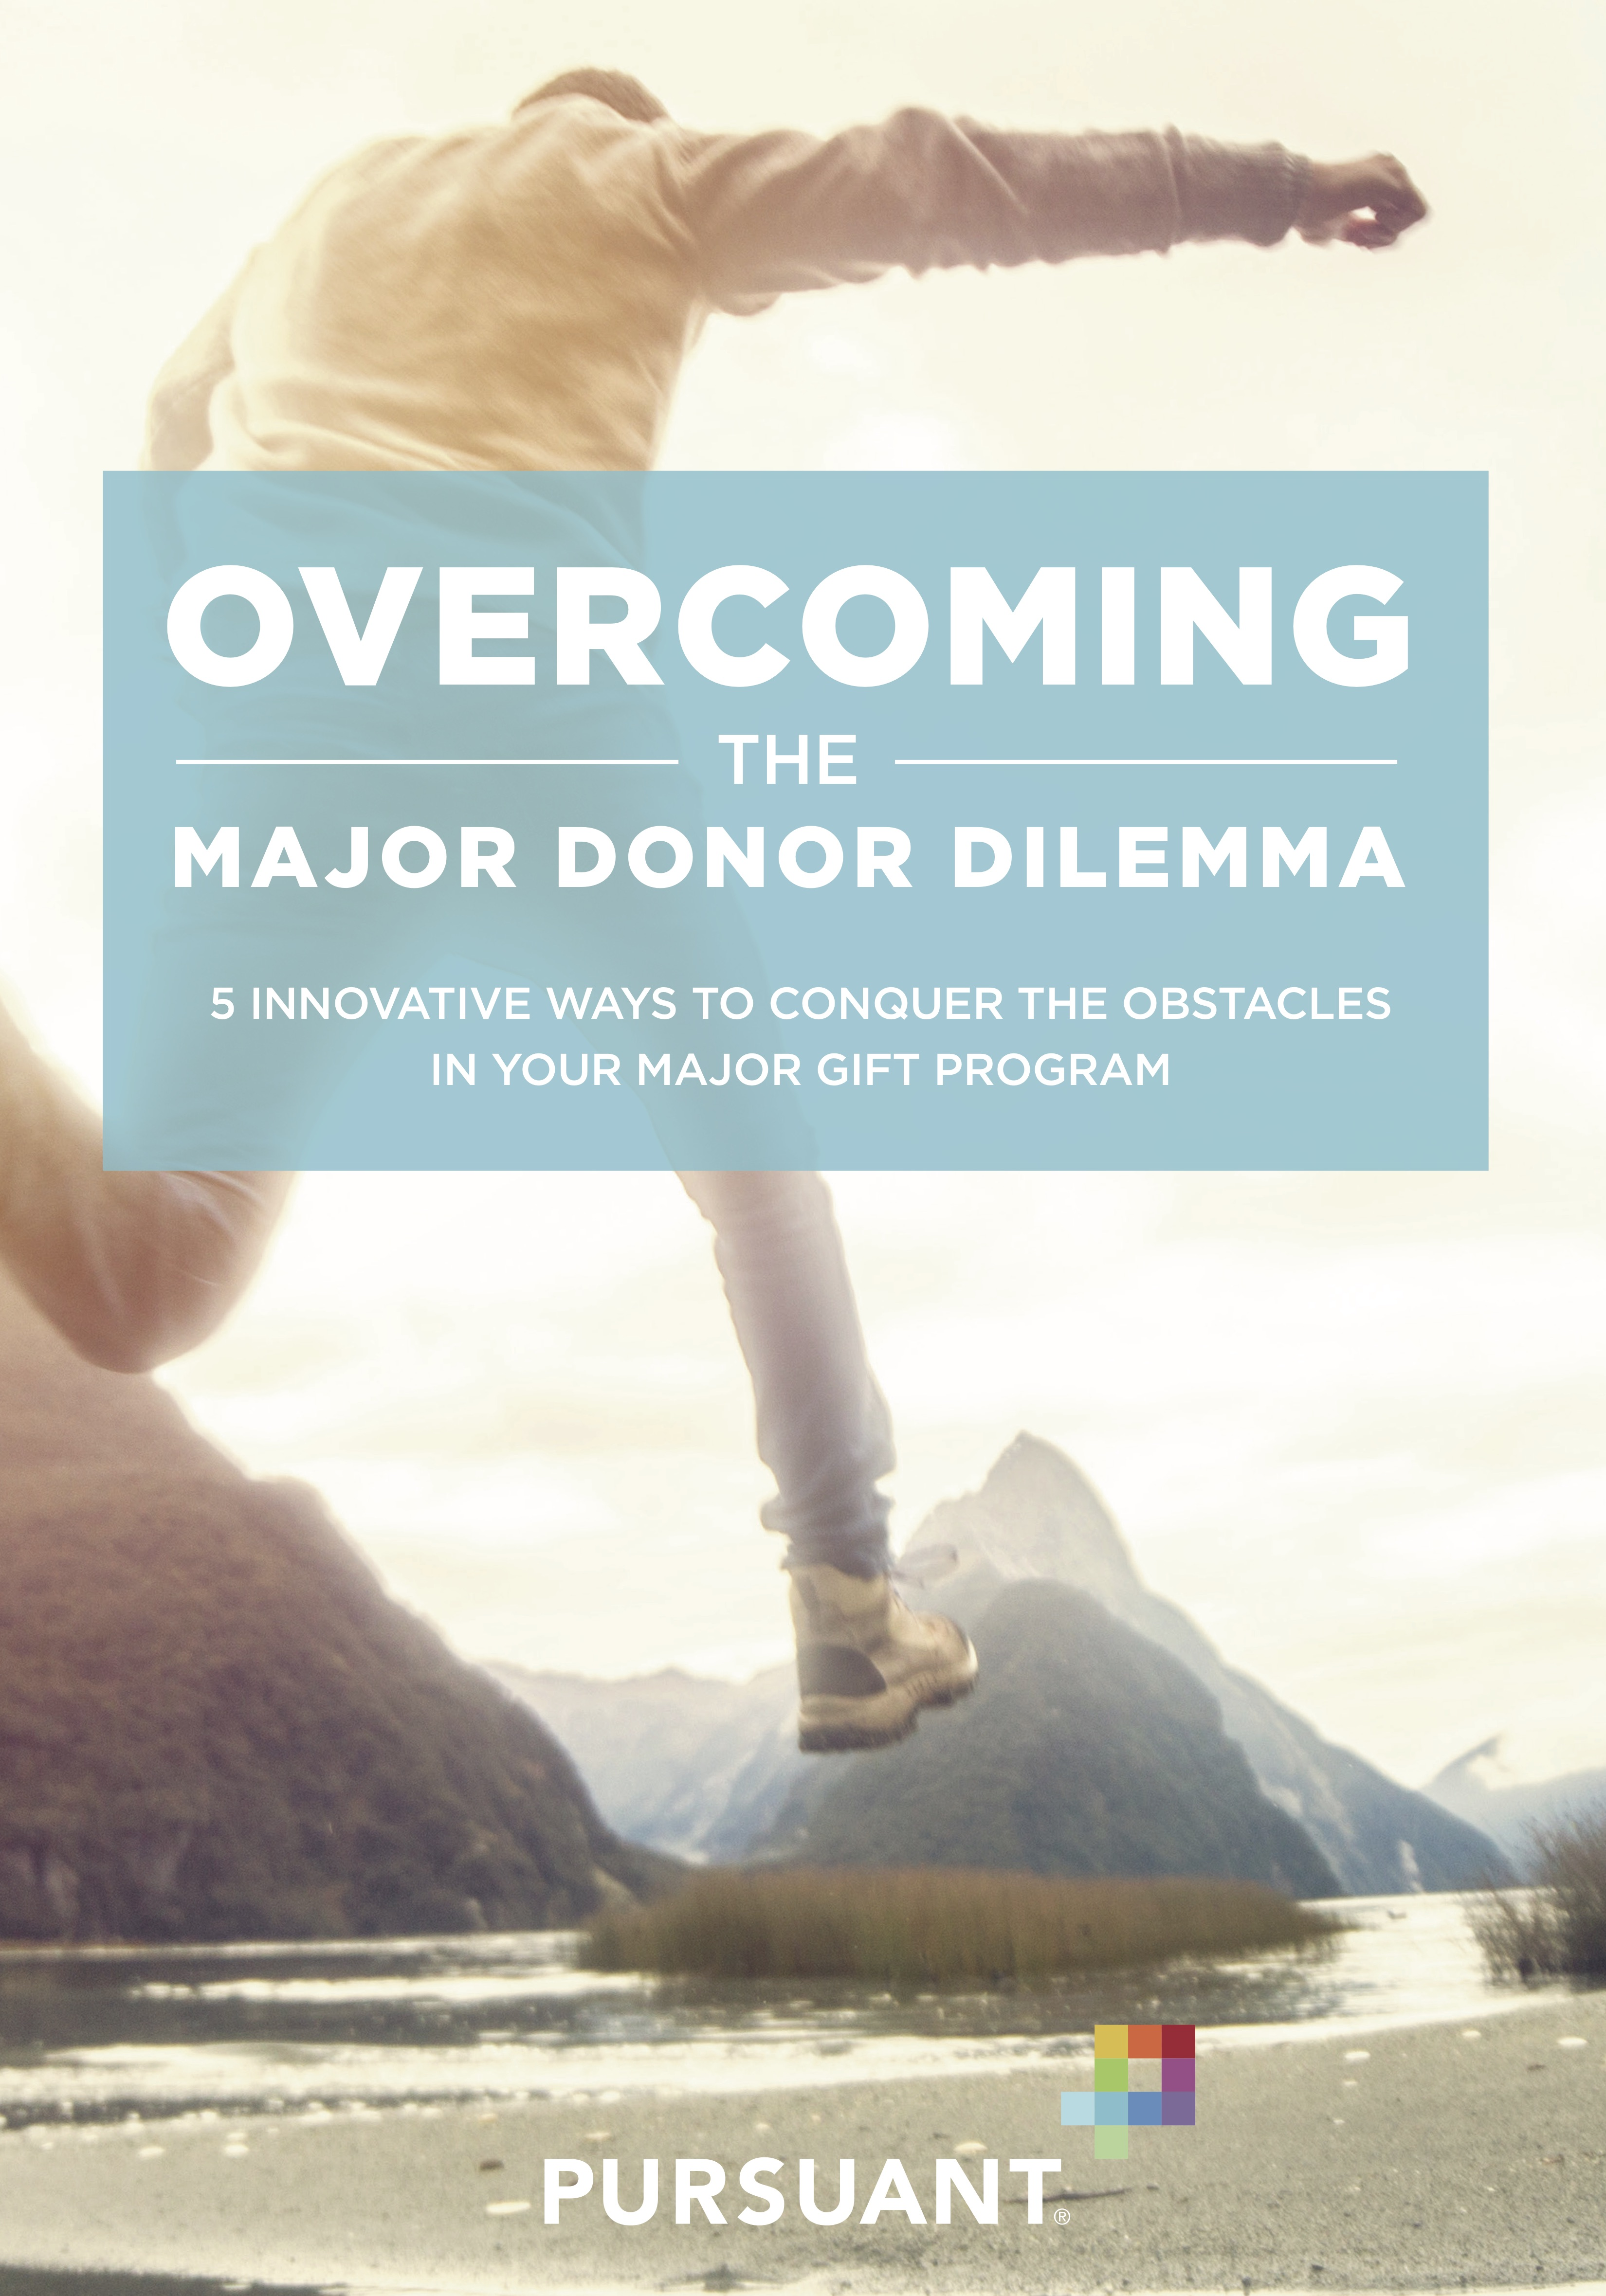 Overcoming the Major Donor Dilemma